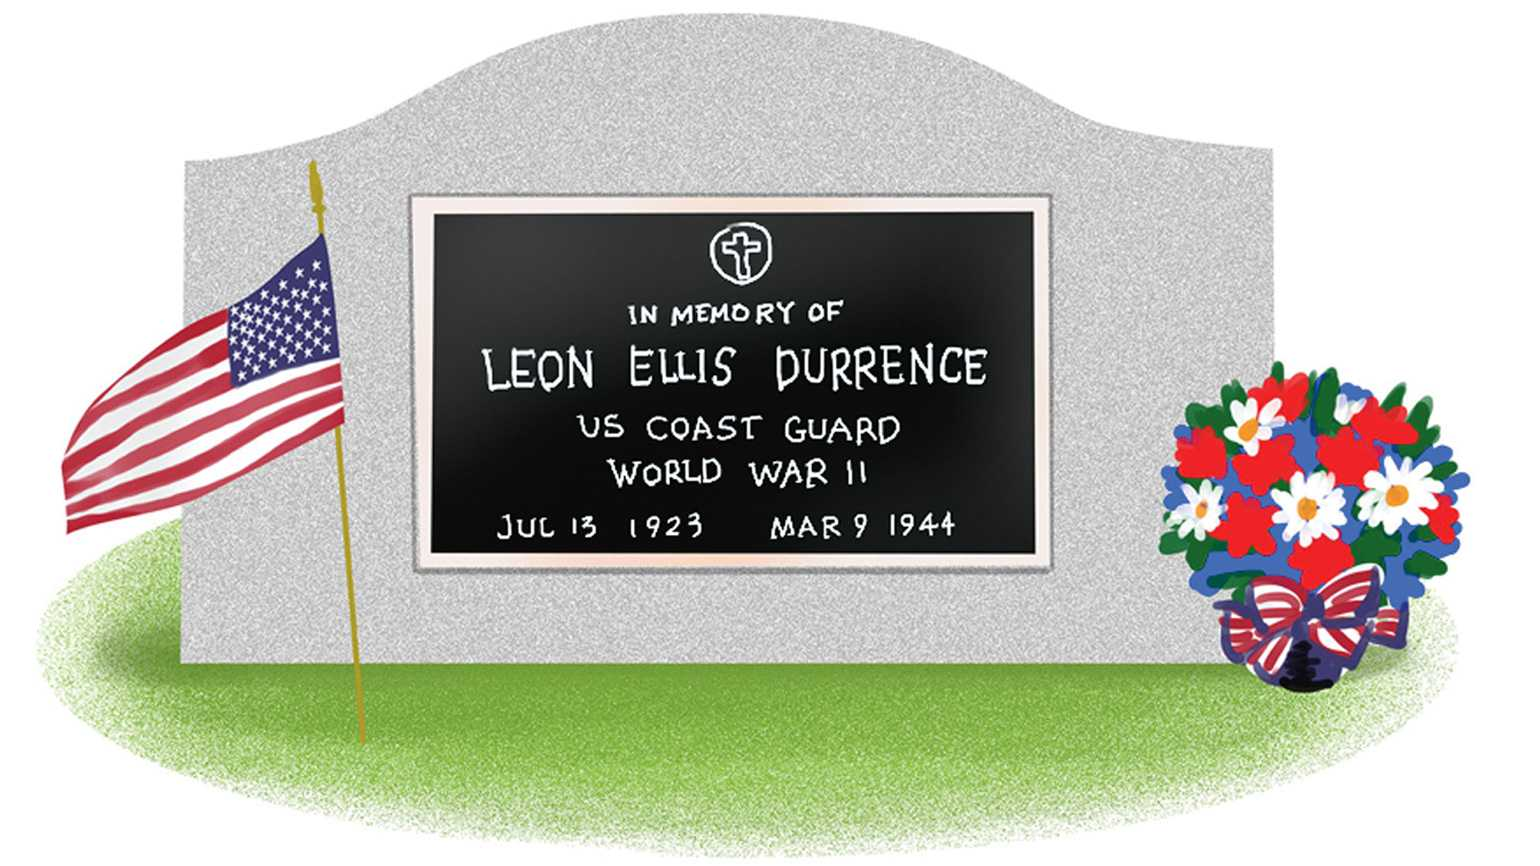 A polished tombstone of a World War 2 US Coast Guard Leon Ellis Durrence adorned with a bouquet of flowers and a small American flag.